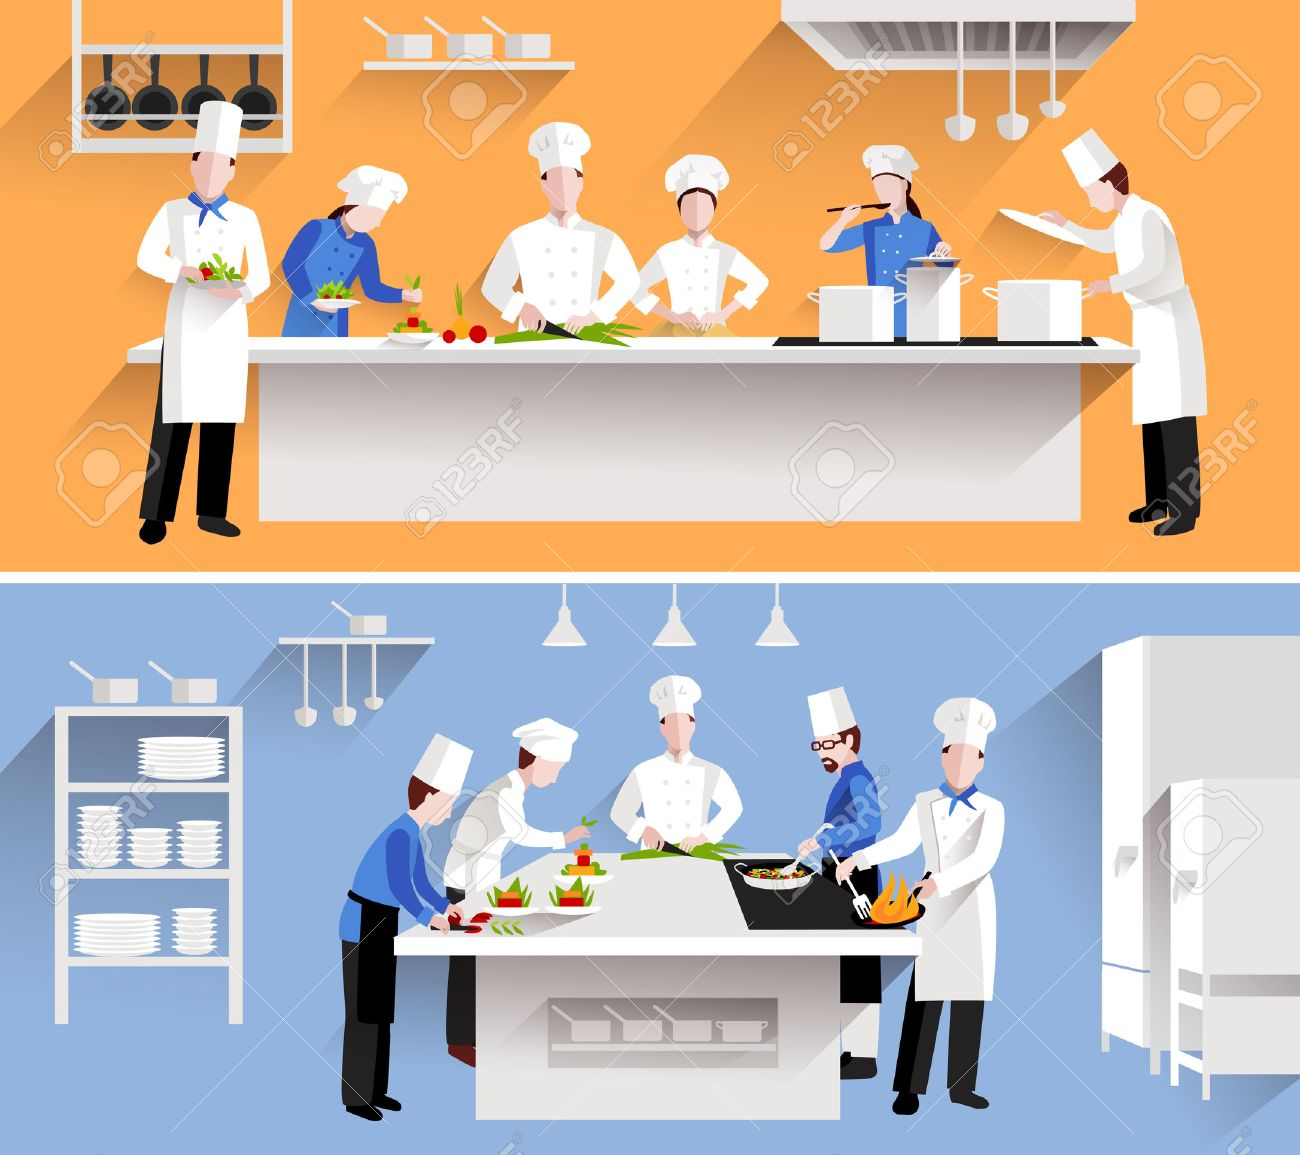 Restaurant Kitchen Illustration cooking process with chef figures at the table in restaurant